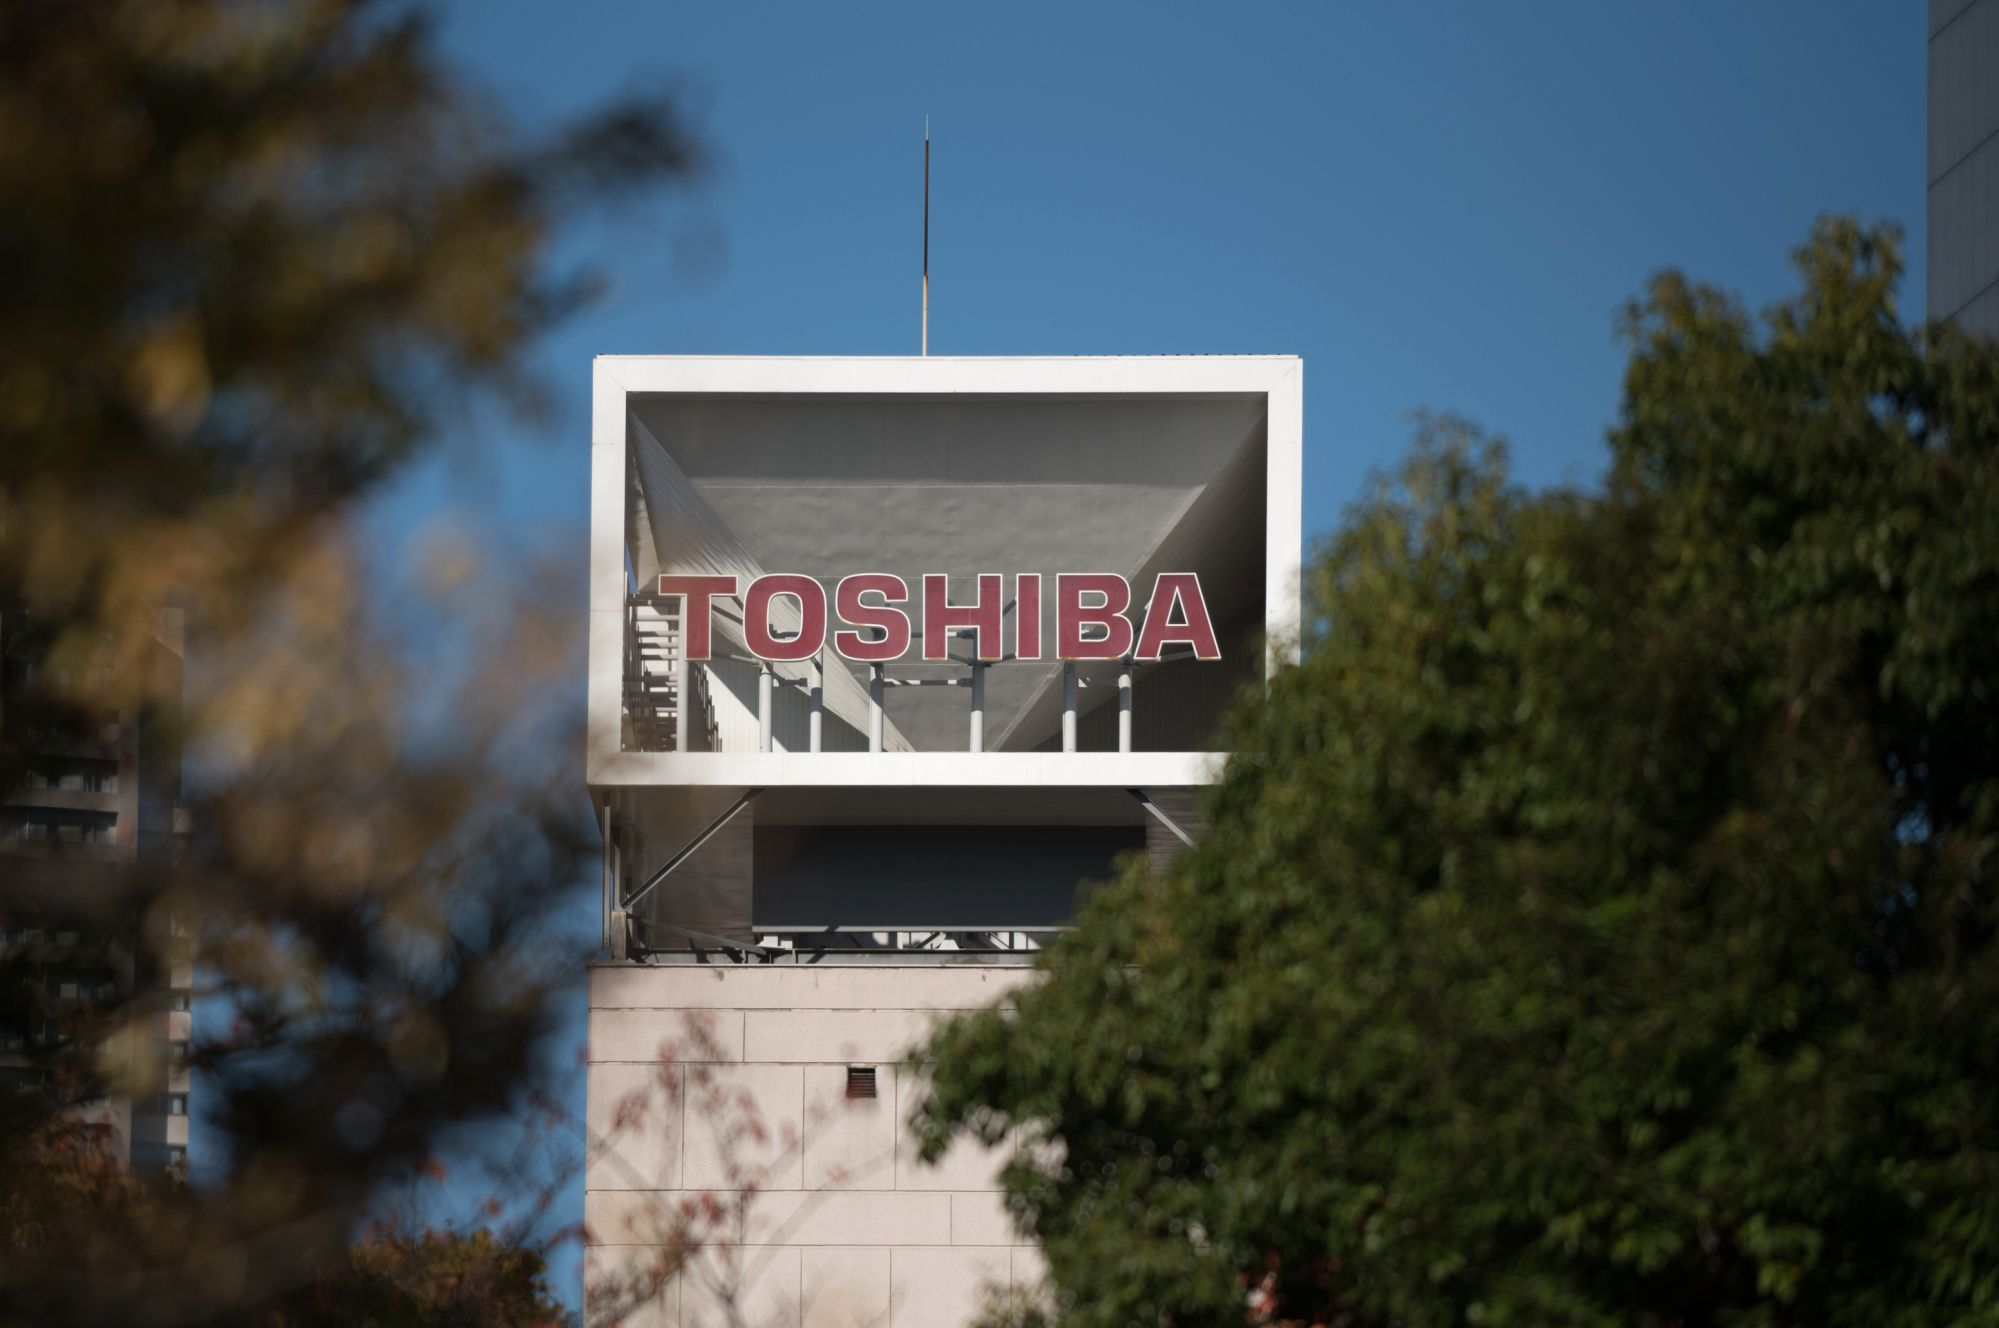 Signage for Toshiba Corp. is seen at the company's headquarters in Tokyo, Japan, on Thursday, Nov. 9, 2017. Toshiba is speeding up investments into a new flash-memory plant even as participation of its joint venture partner Western Digital Corp. remains unclear, ratcheting up the pressure on its U.S. counterpart to resolve a legal spat between two companies. Photographer: Akio Kon/Bloomberg